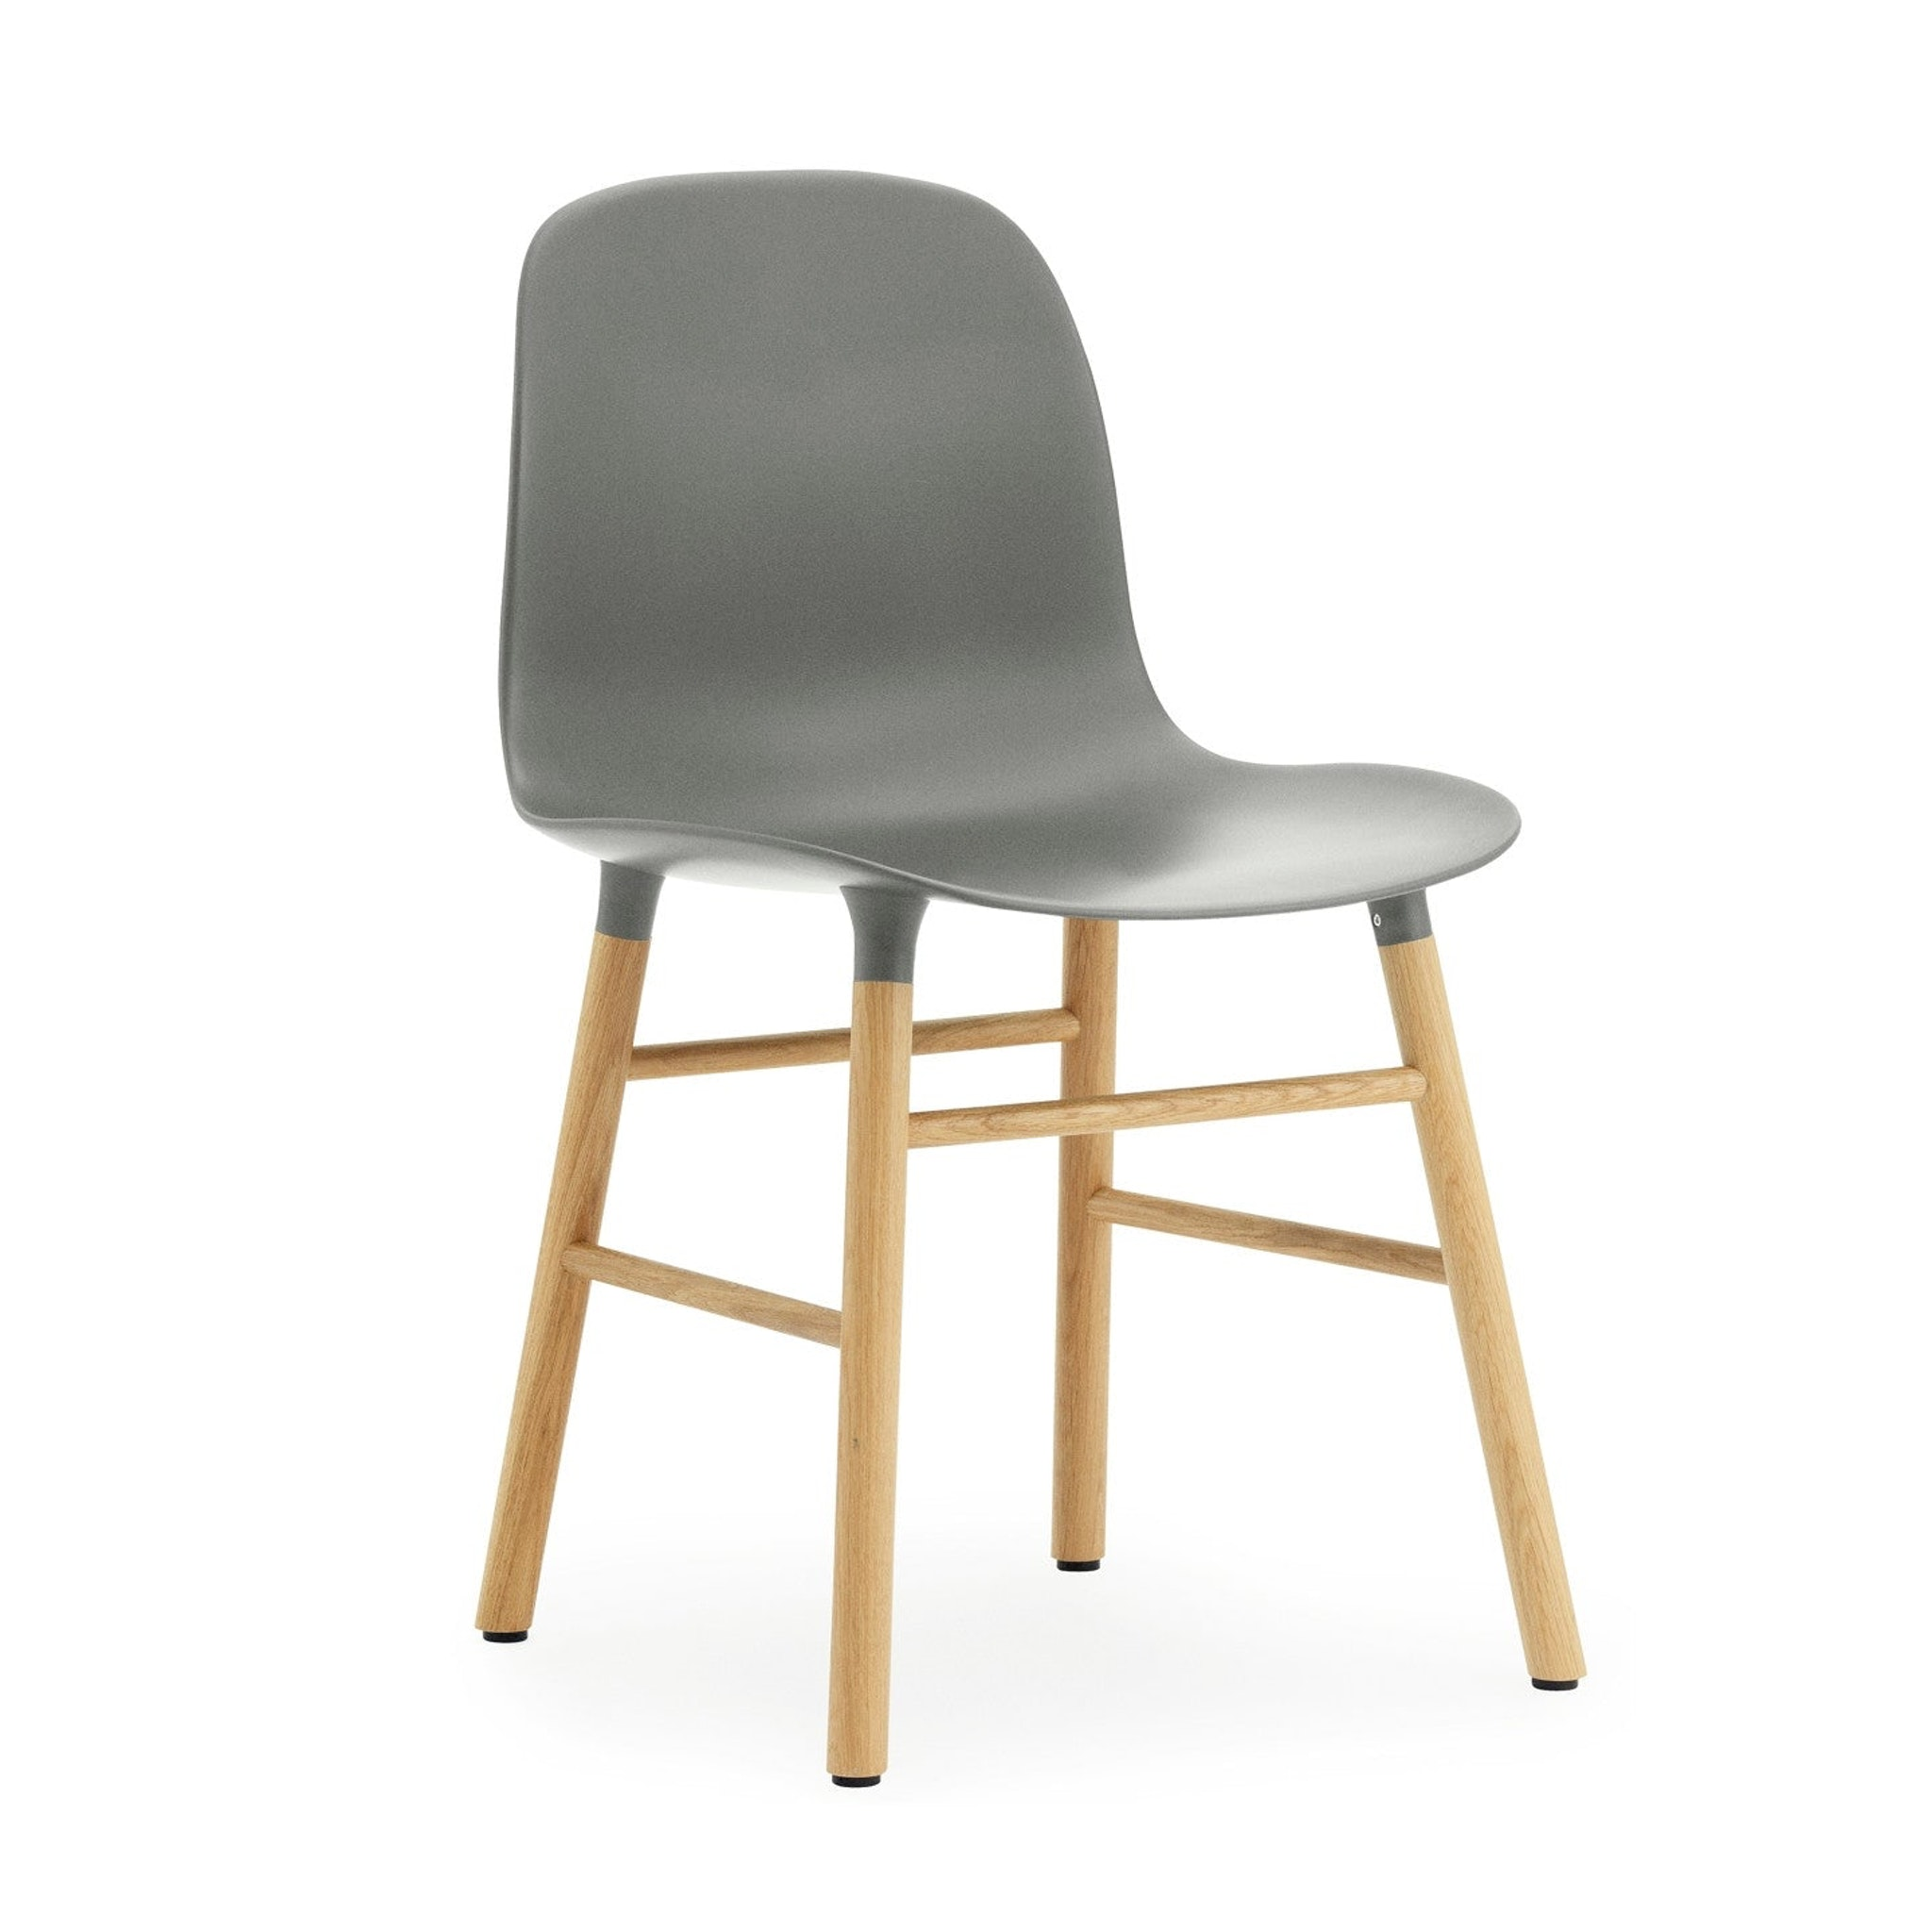 Form Chair with Wooden Base by Normann Copenhagen